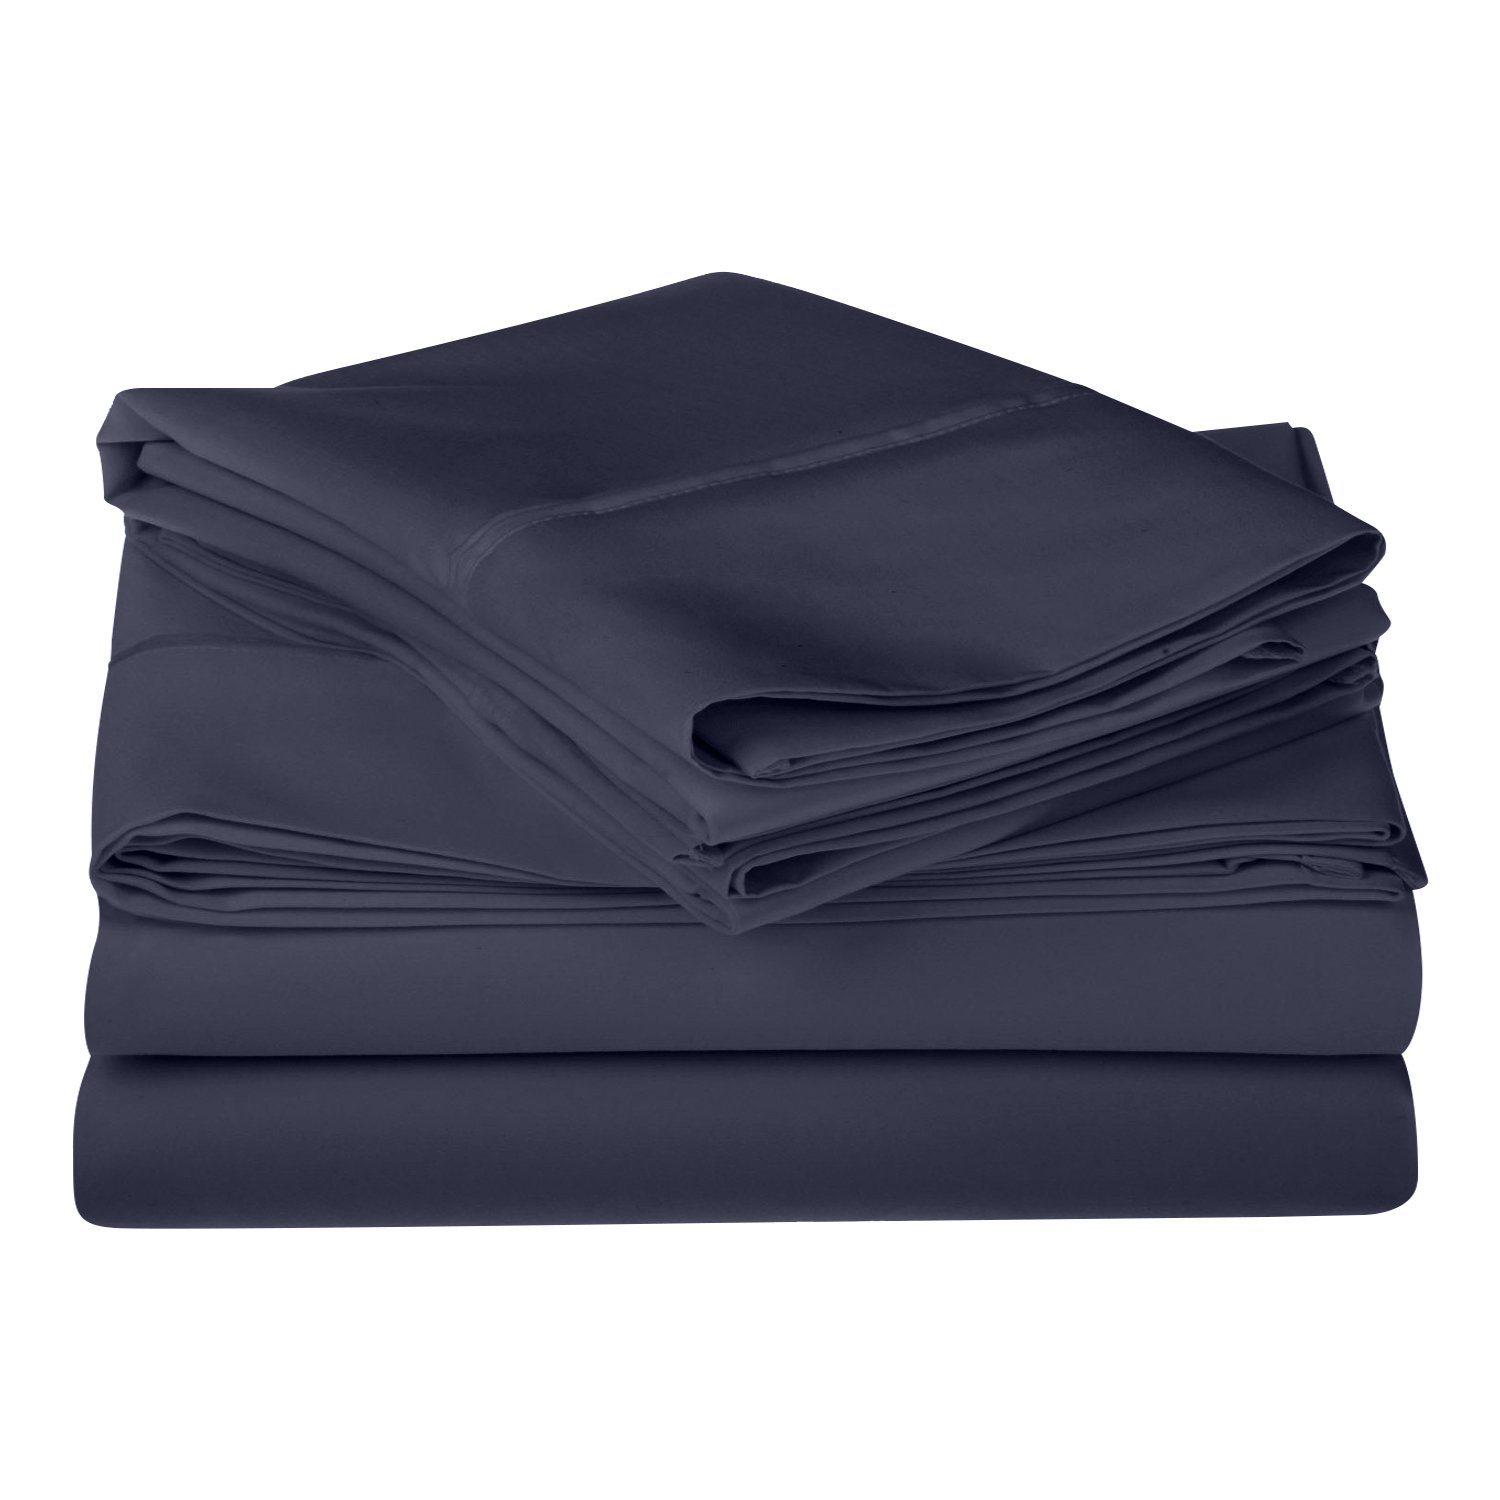 Navy bluee California King 1200 Thread Count 100% Egyptian Cotton, Single Ply, California King Bed Sheet Set, Solid, Navy bluee